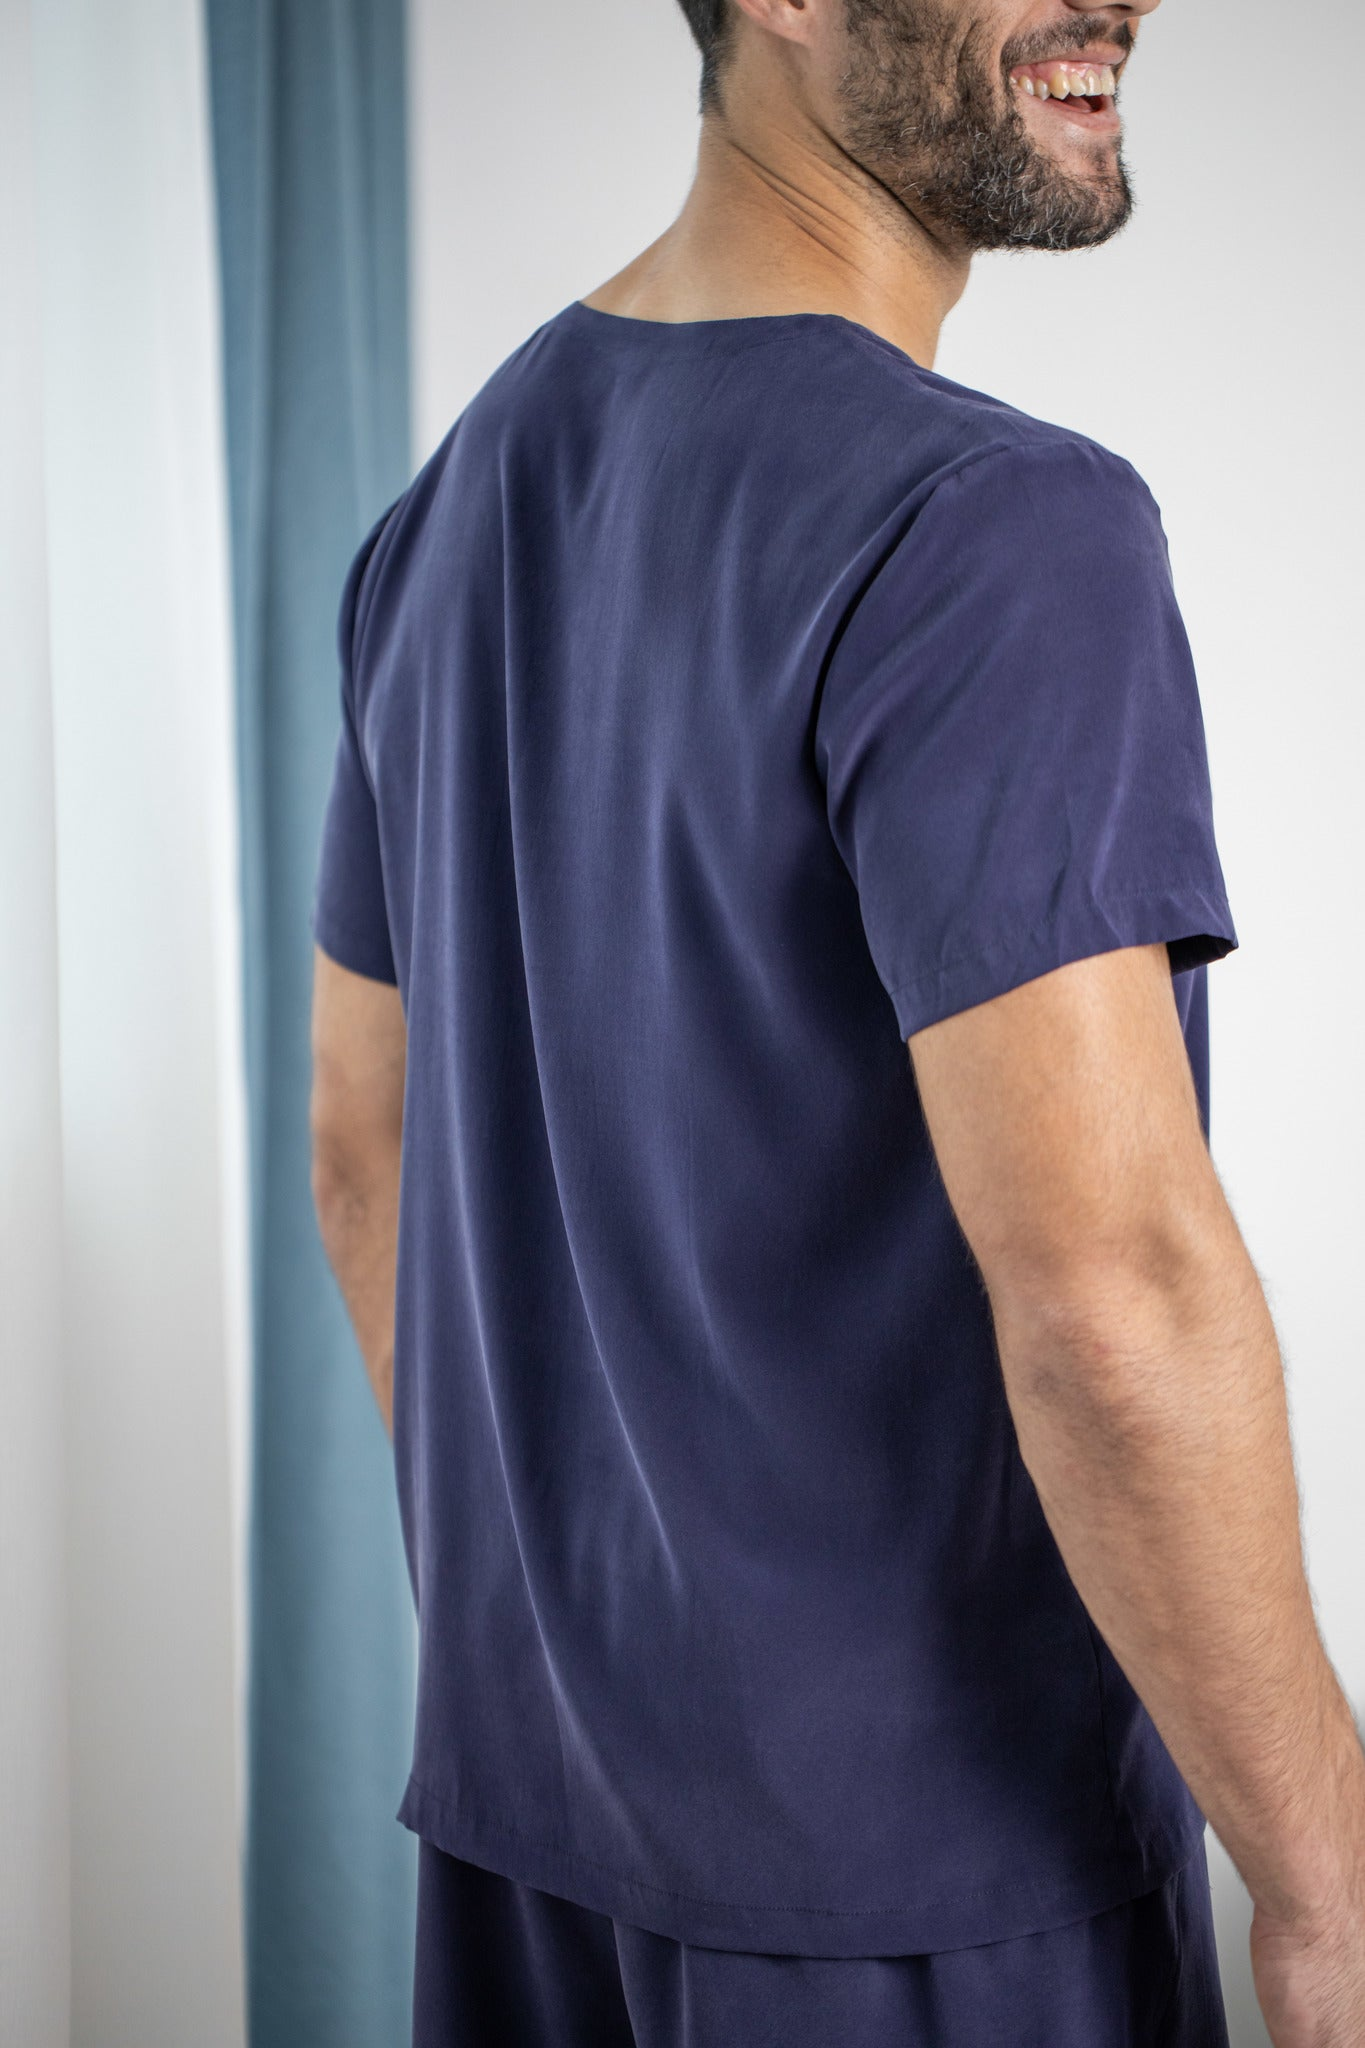 Equilibrium Sleep Tee - Men